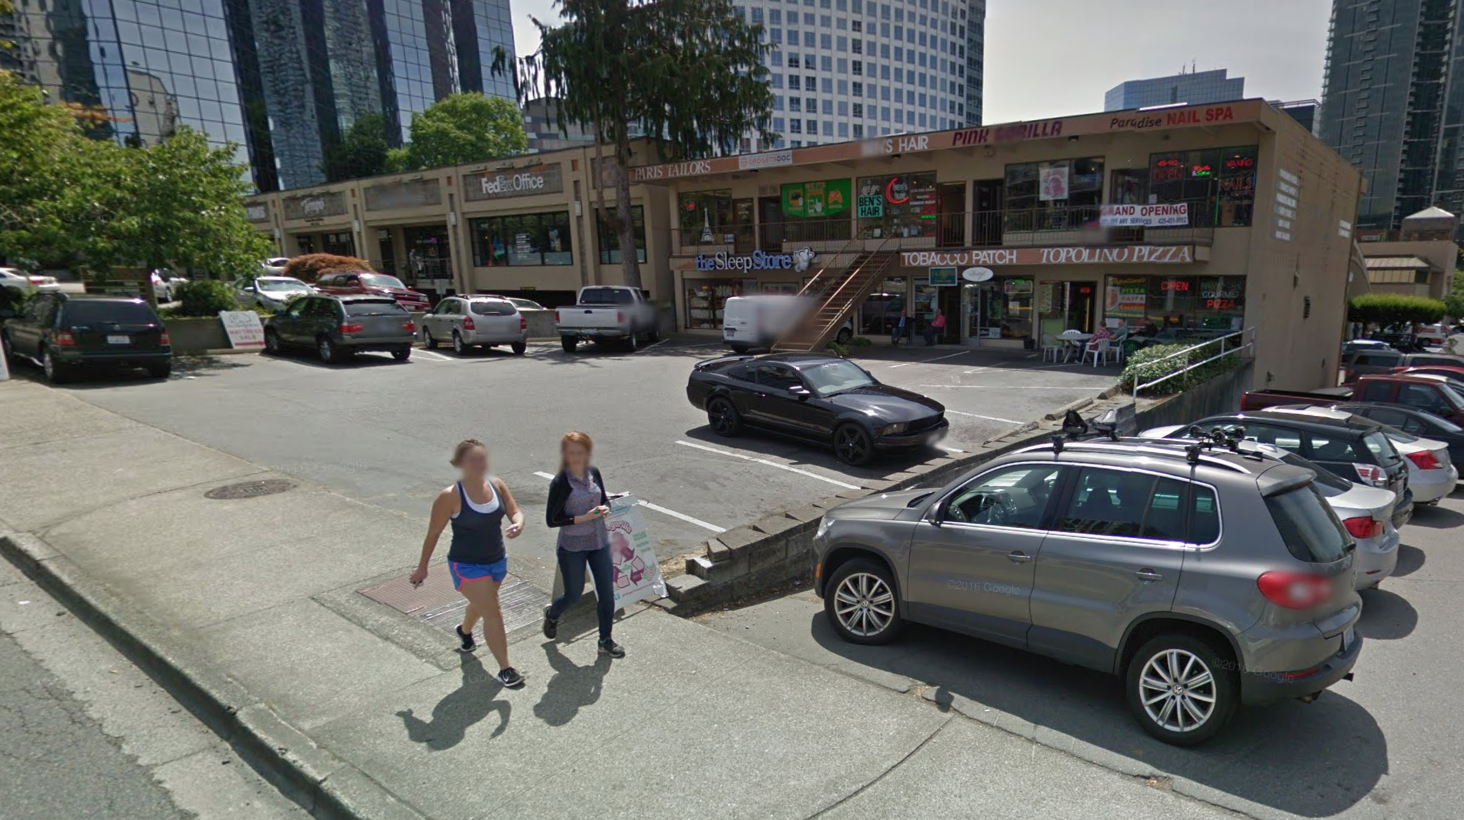 Condo Developer, Bosa Pays $35M for Downtown Bellevue Site